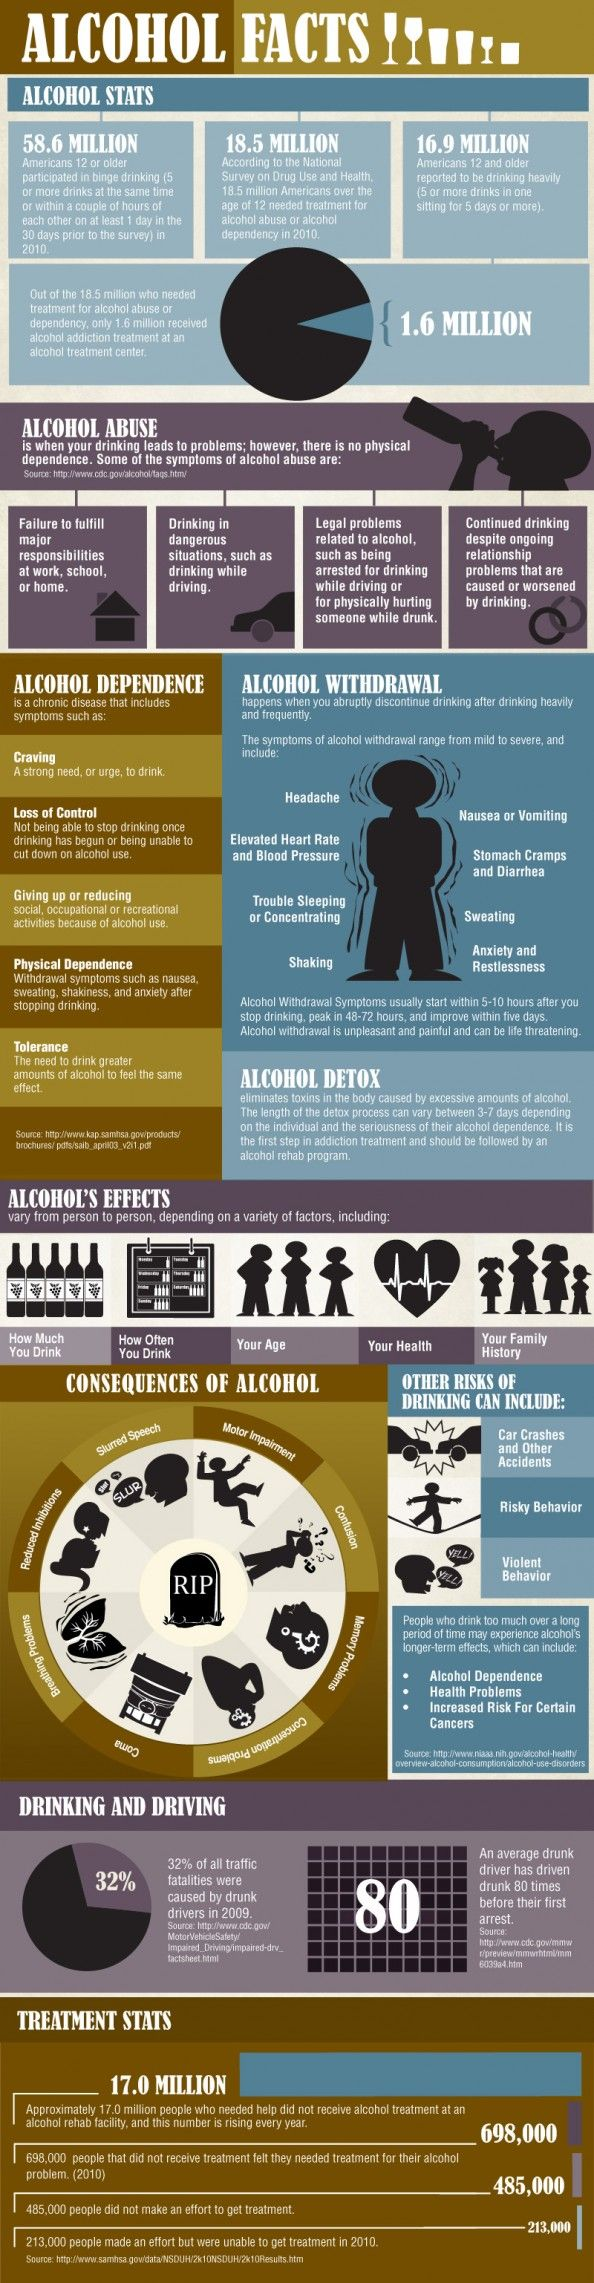 Consequences of Alcohol abuse Infographic. Pinned by Annie Wright, MA, MFTi. Visit me for many more resources at www.annie-wright.com.